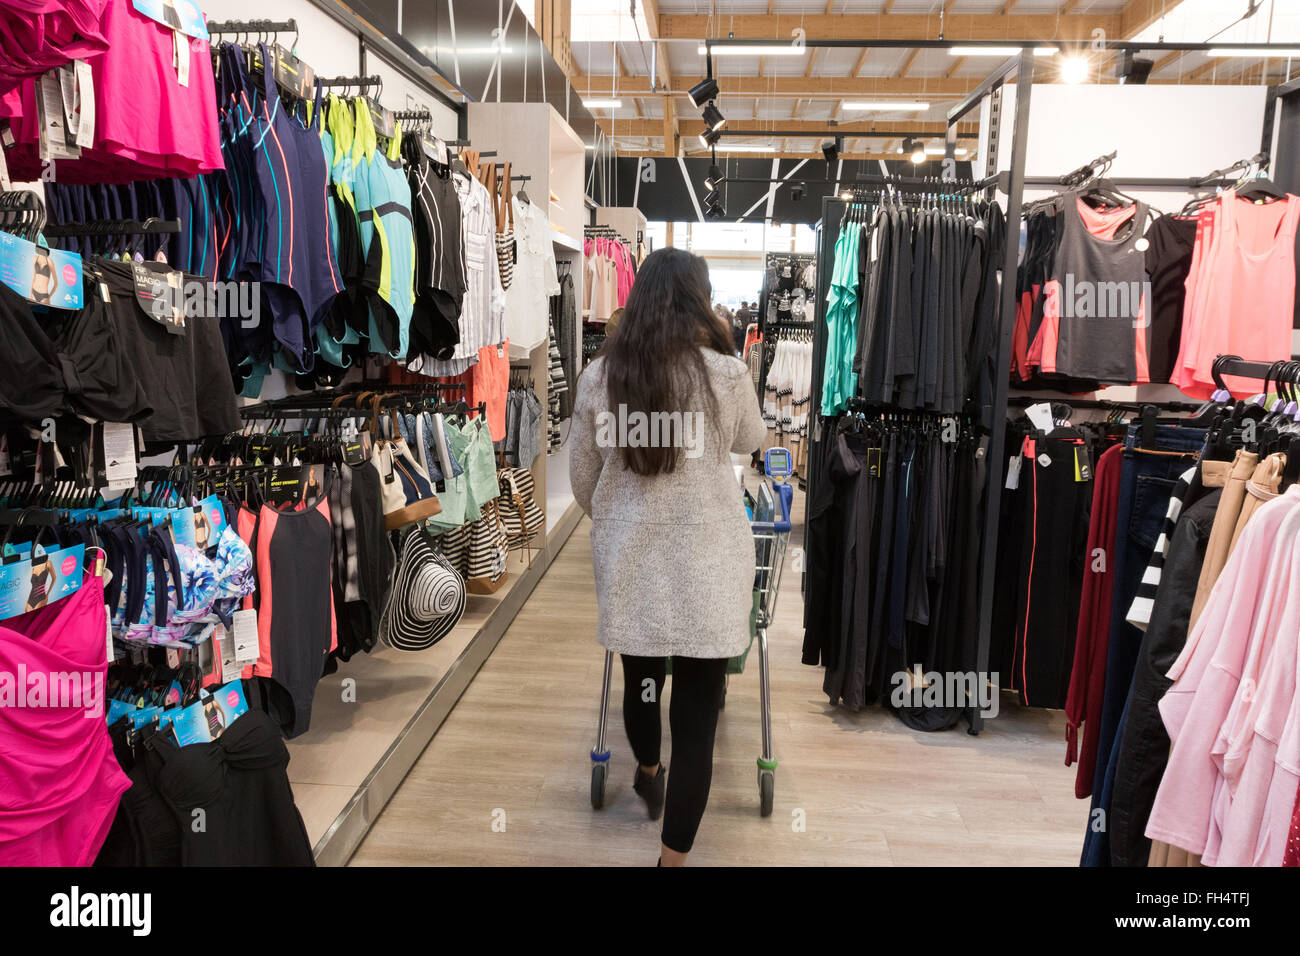 9b5288f4f903 Tesco Clothing Stock Photos   Tesco Clothing Stock Images - Alamy